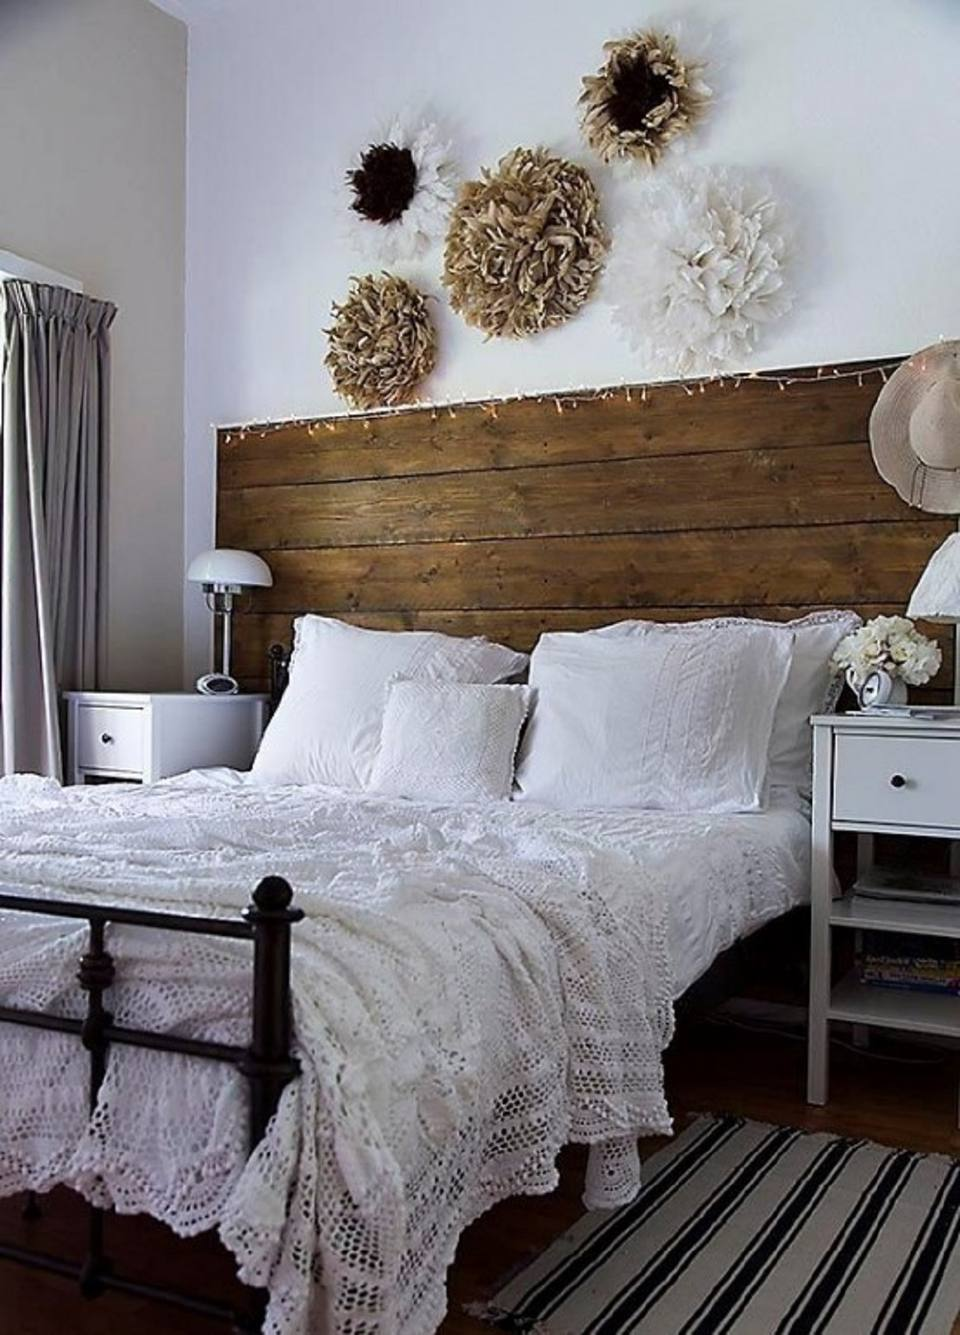 Schlafzimmer Vintage Style Tips And Ideas For Decorating A Bedroom In Vintage Style